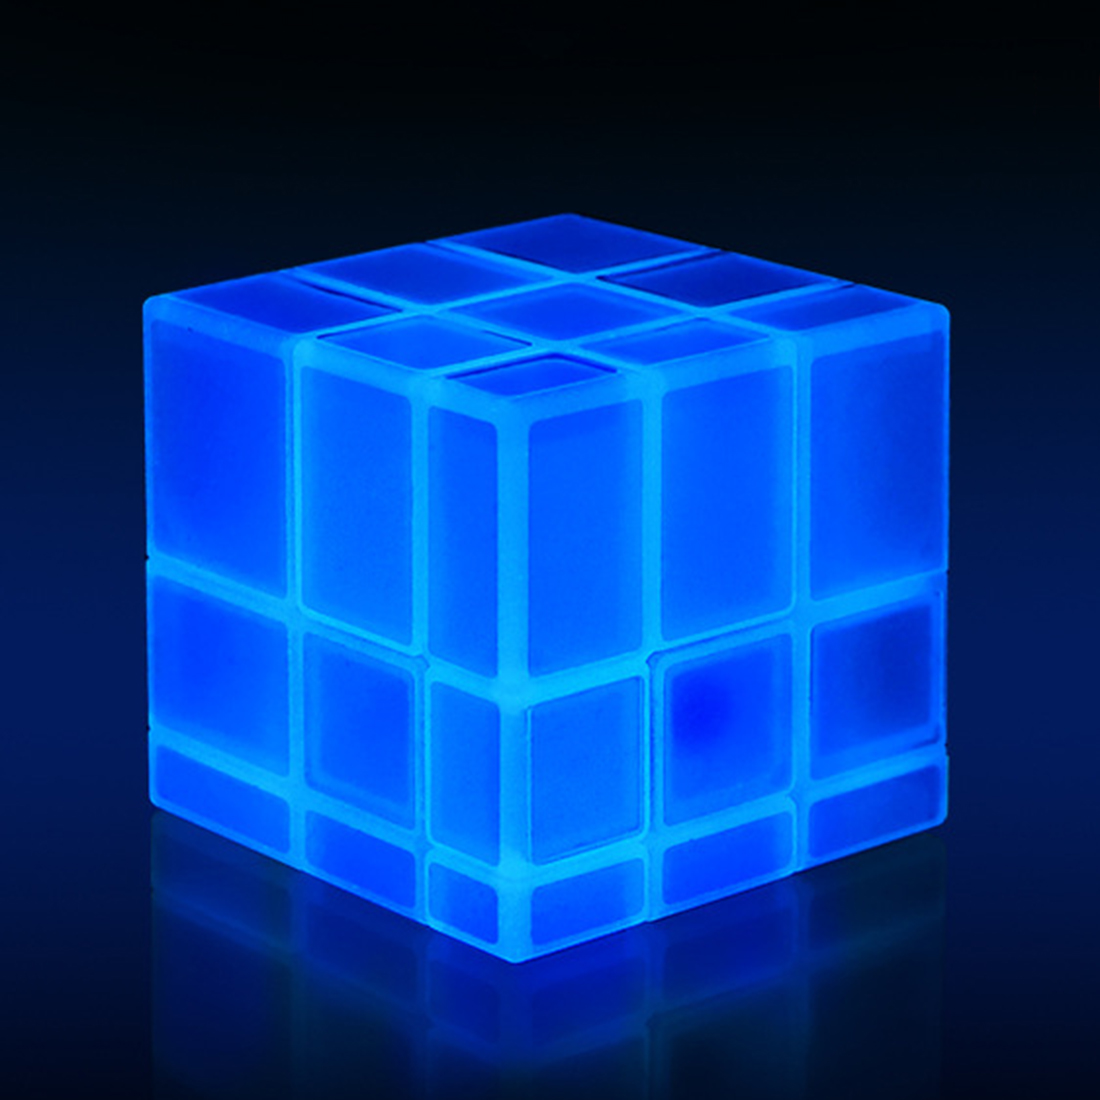 New QiYi 3X3X3 Mirror Blocks Luminous Magic Speed Cube Puzzle Cubo Magico Professional Learning&Educational Classic Toys Cube